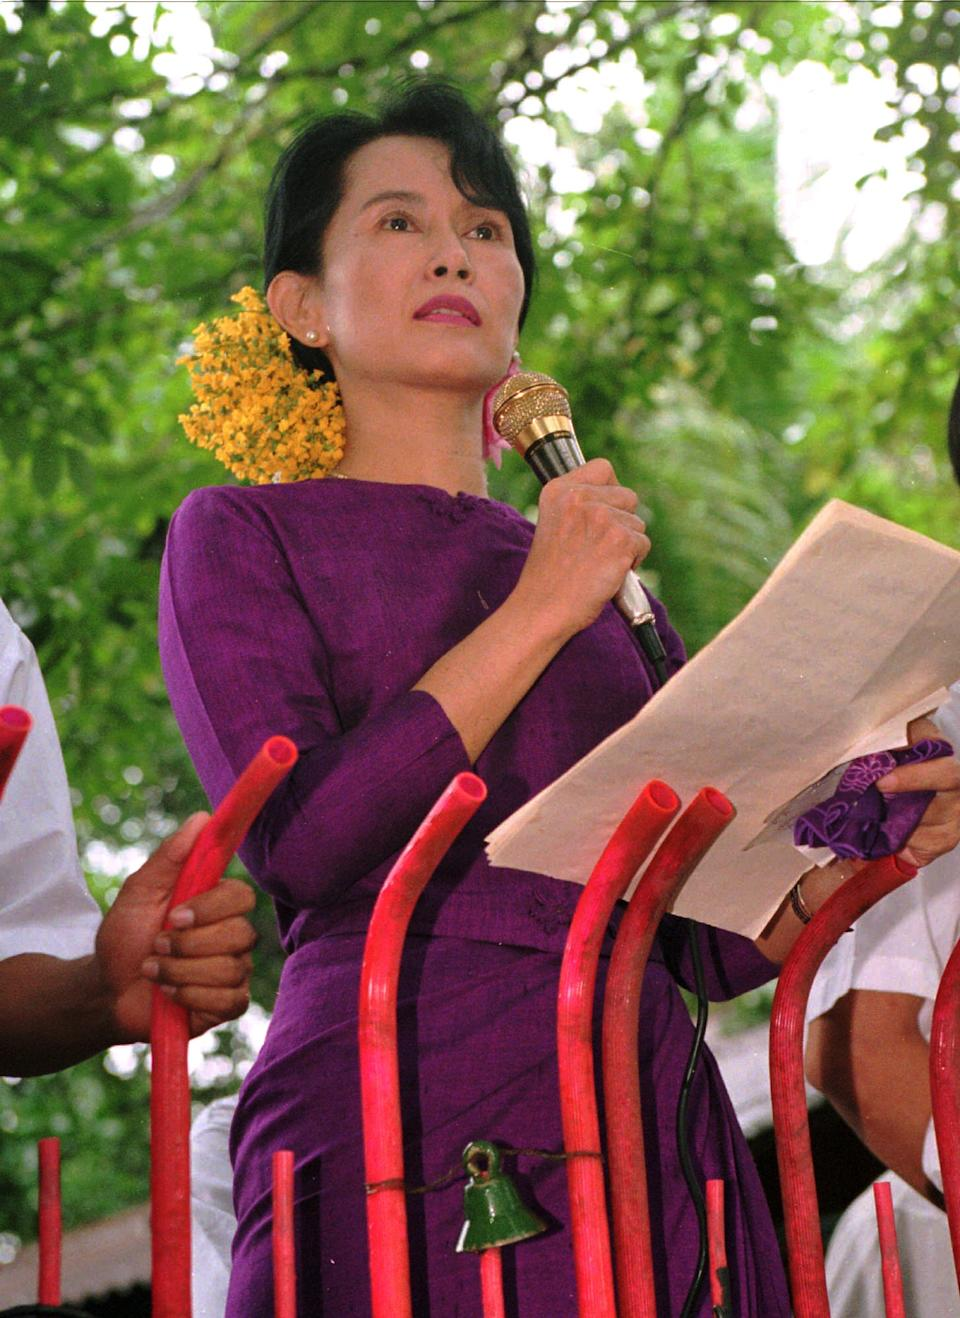 FILE - In this Saturday, May 25, 1996 file photo, Burmese pro-democracy leader Aung San Suu Kyi makes her weekly speech at the gate of her residential compound in Rangoon, Burma. (AP Photo/Richard Vogel)